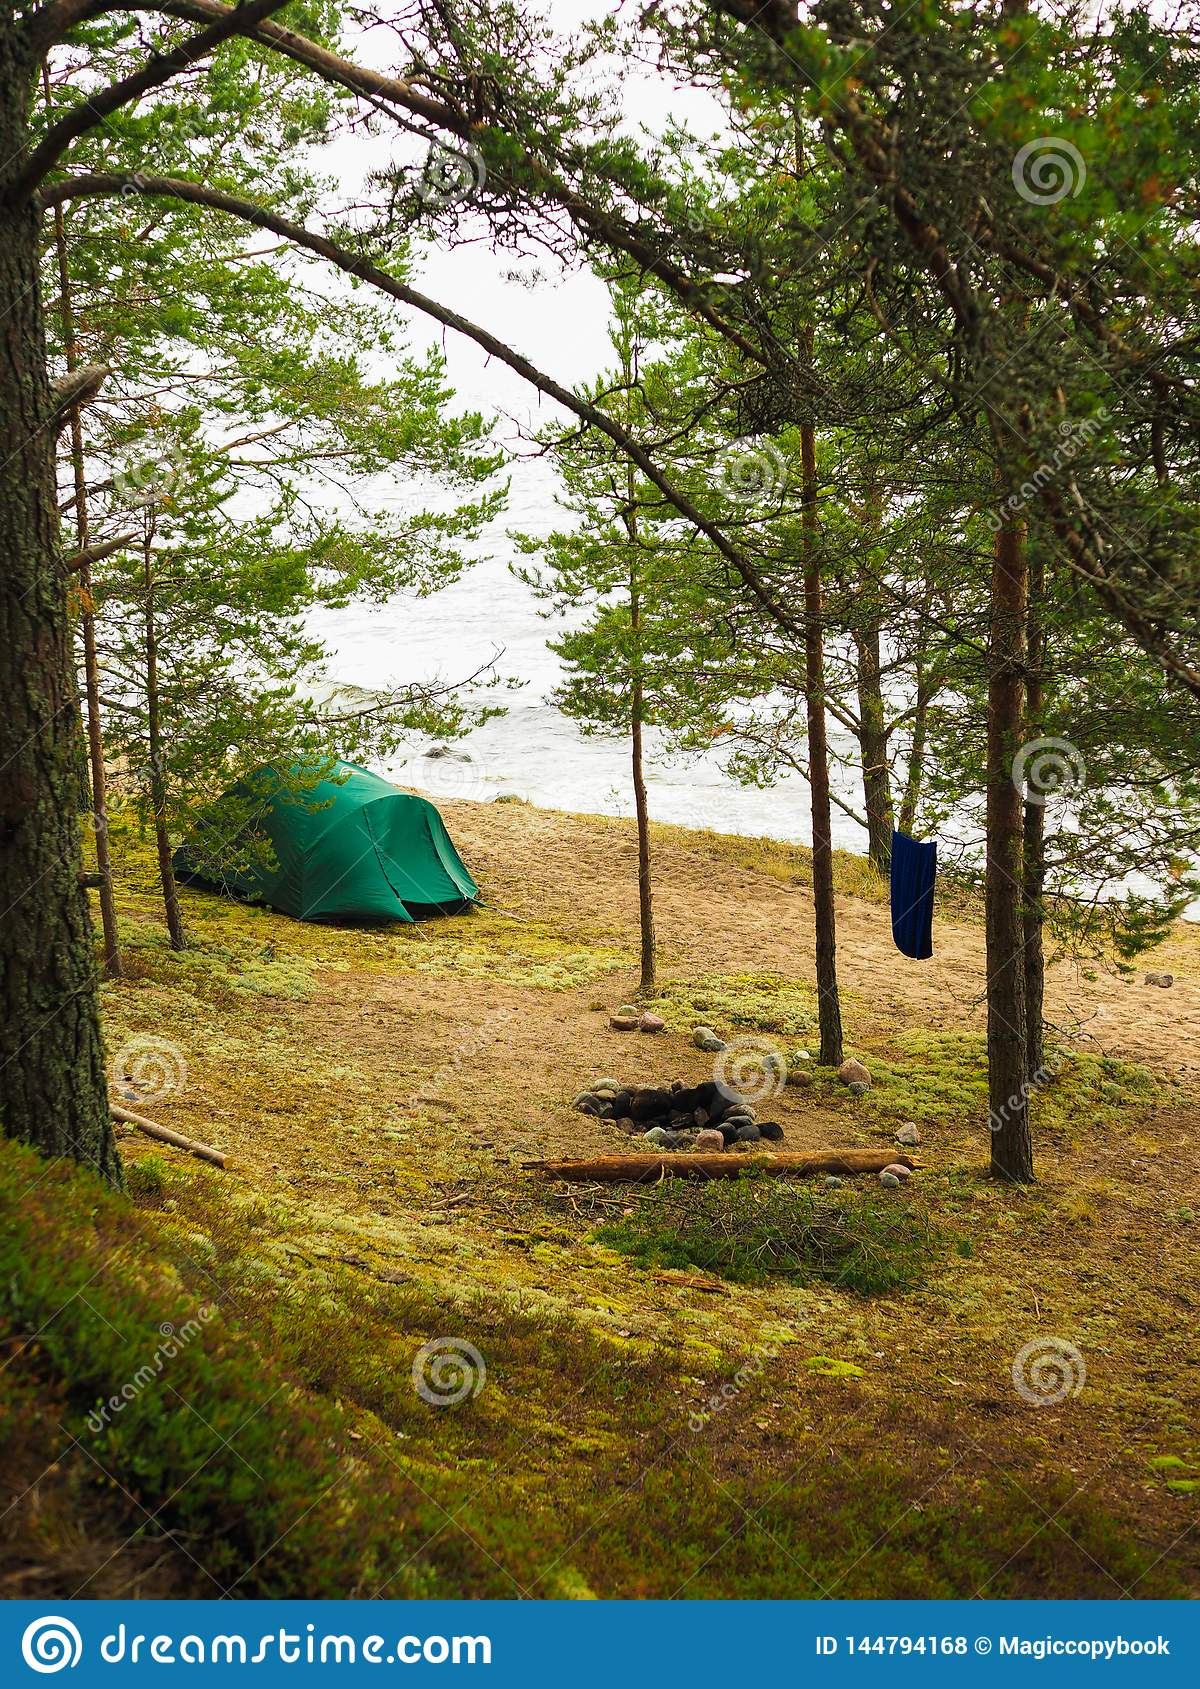 The tent stands on the shore of forest laken